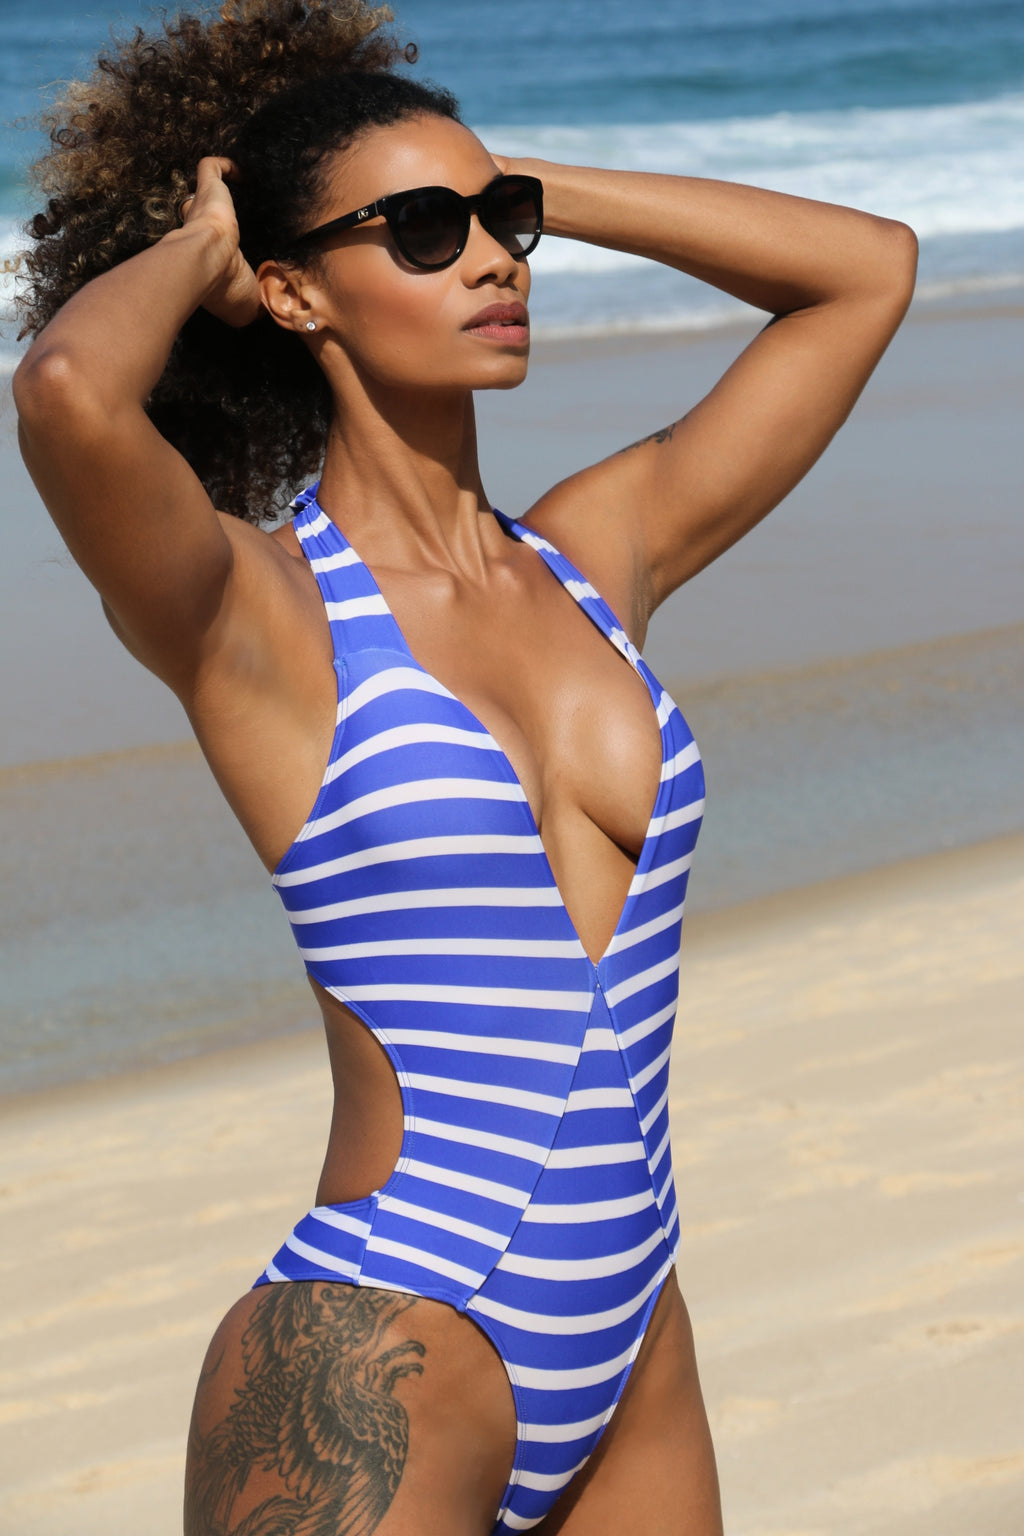 Gorgeous striped swimsuit